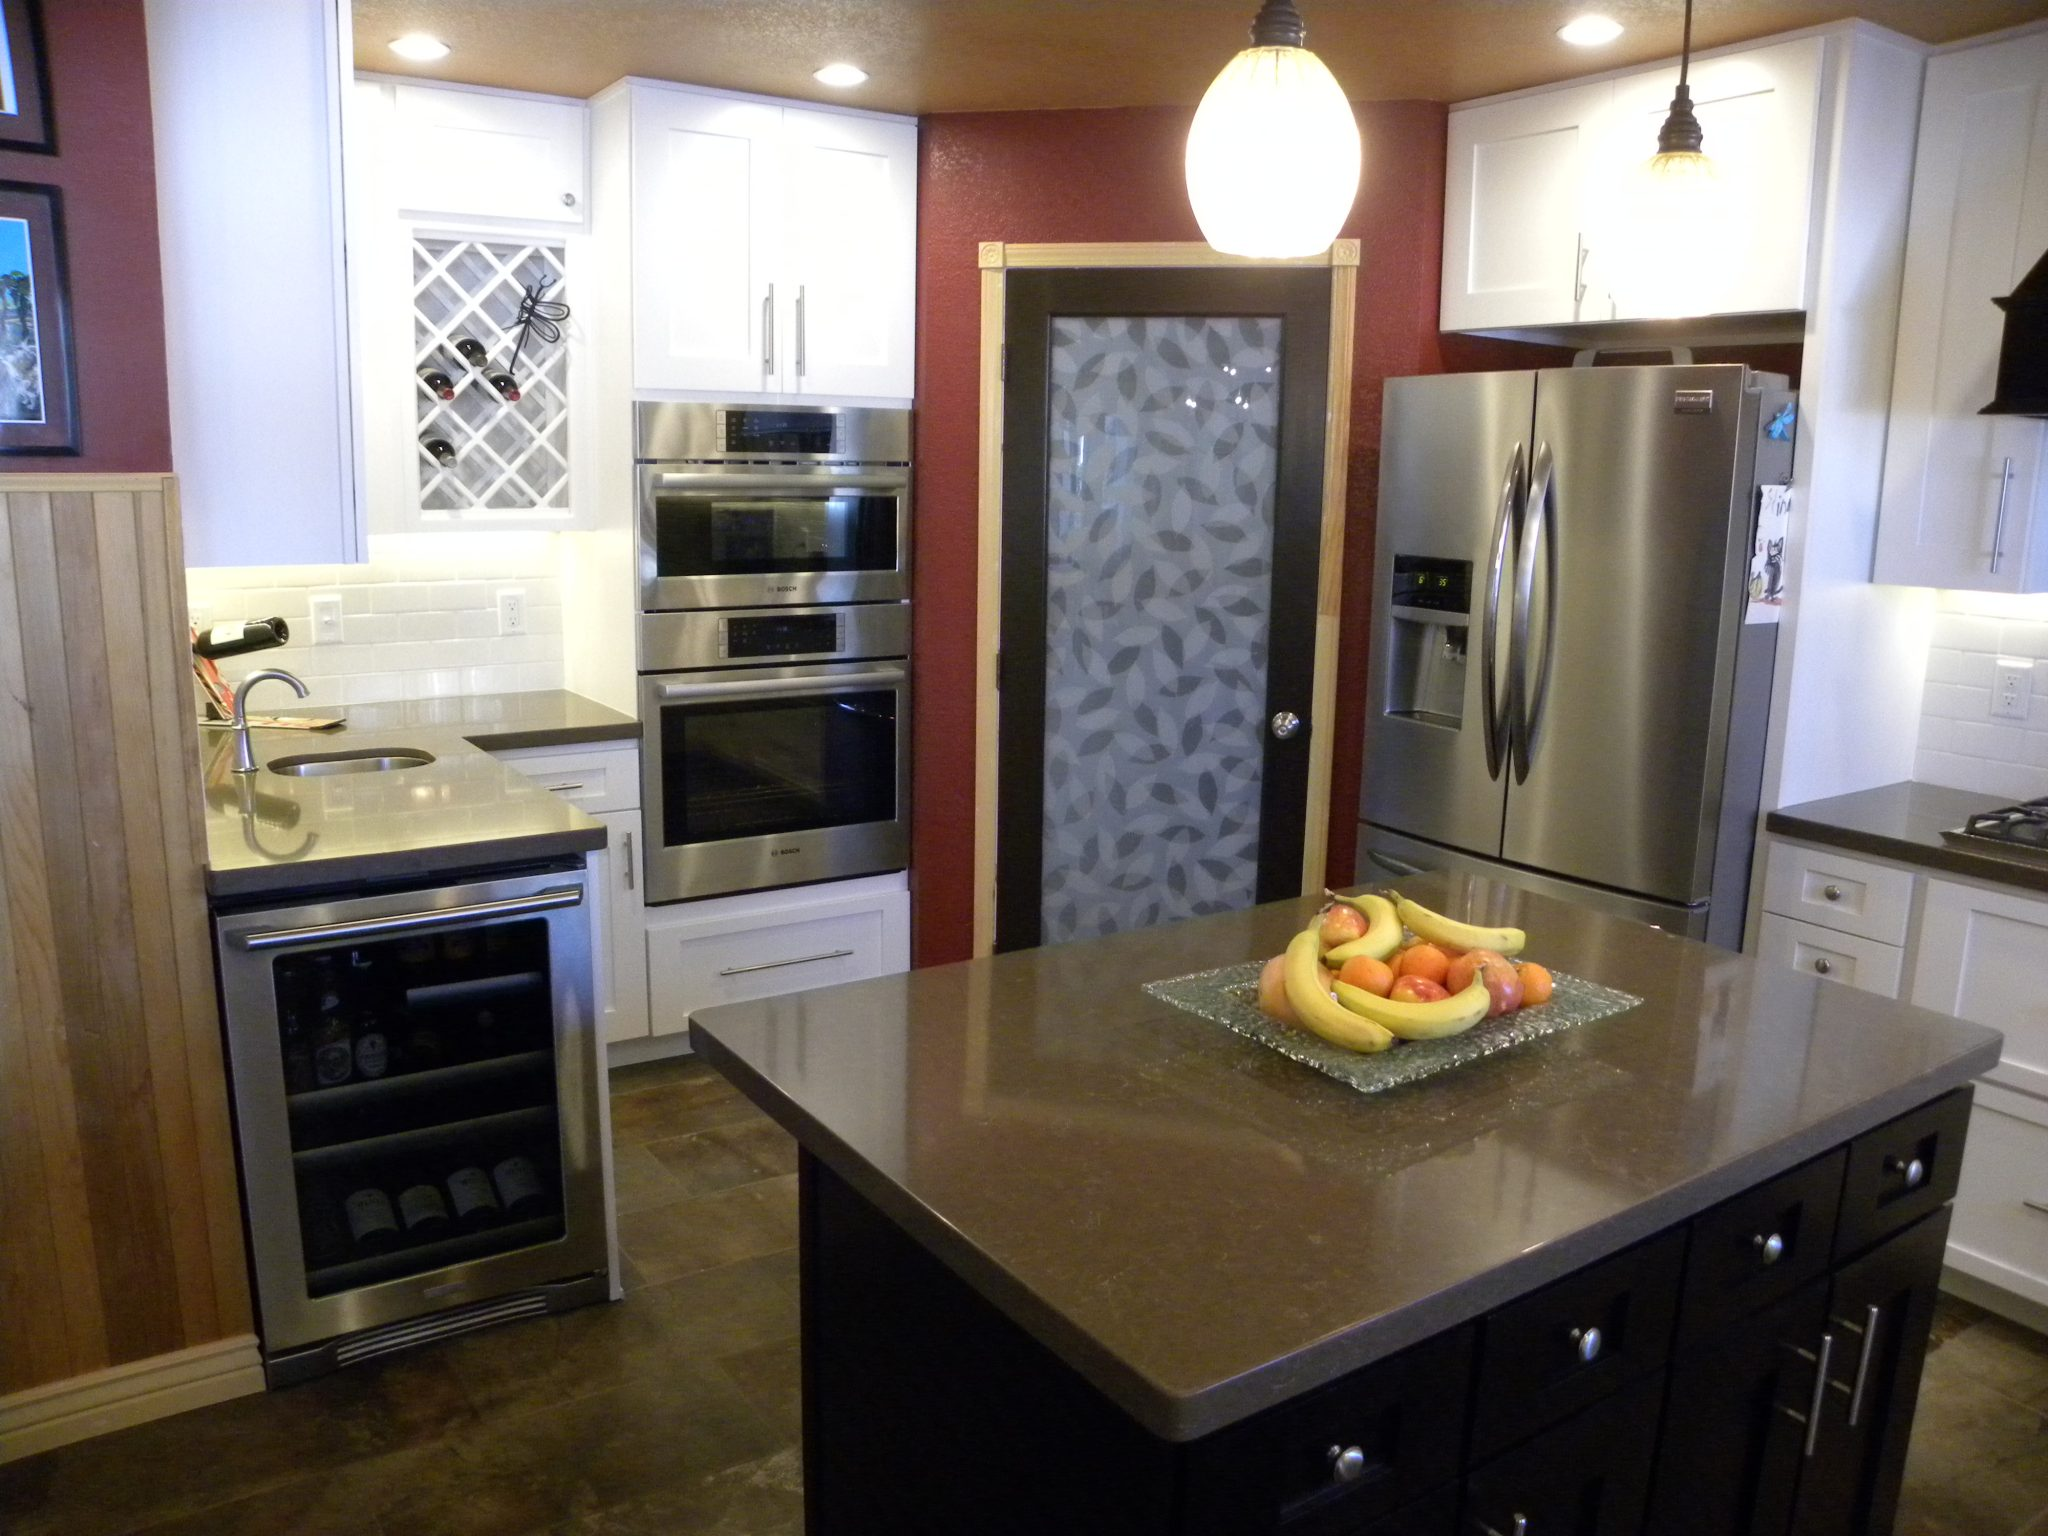 Interior shot of a newly remodeled kitchen with granite countertops, white wooden cabinets, and wood trimmed doors